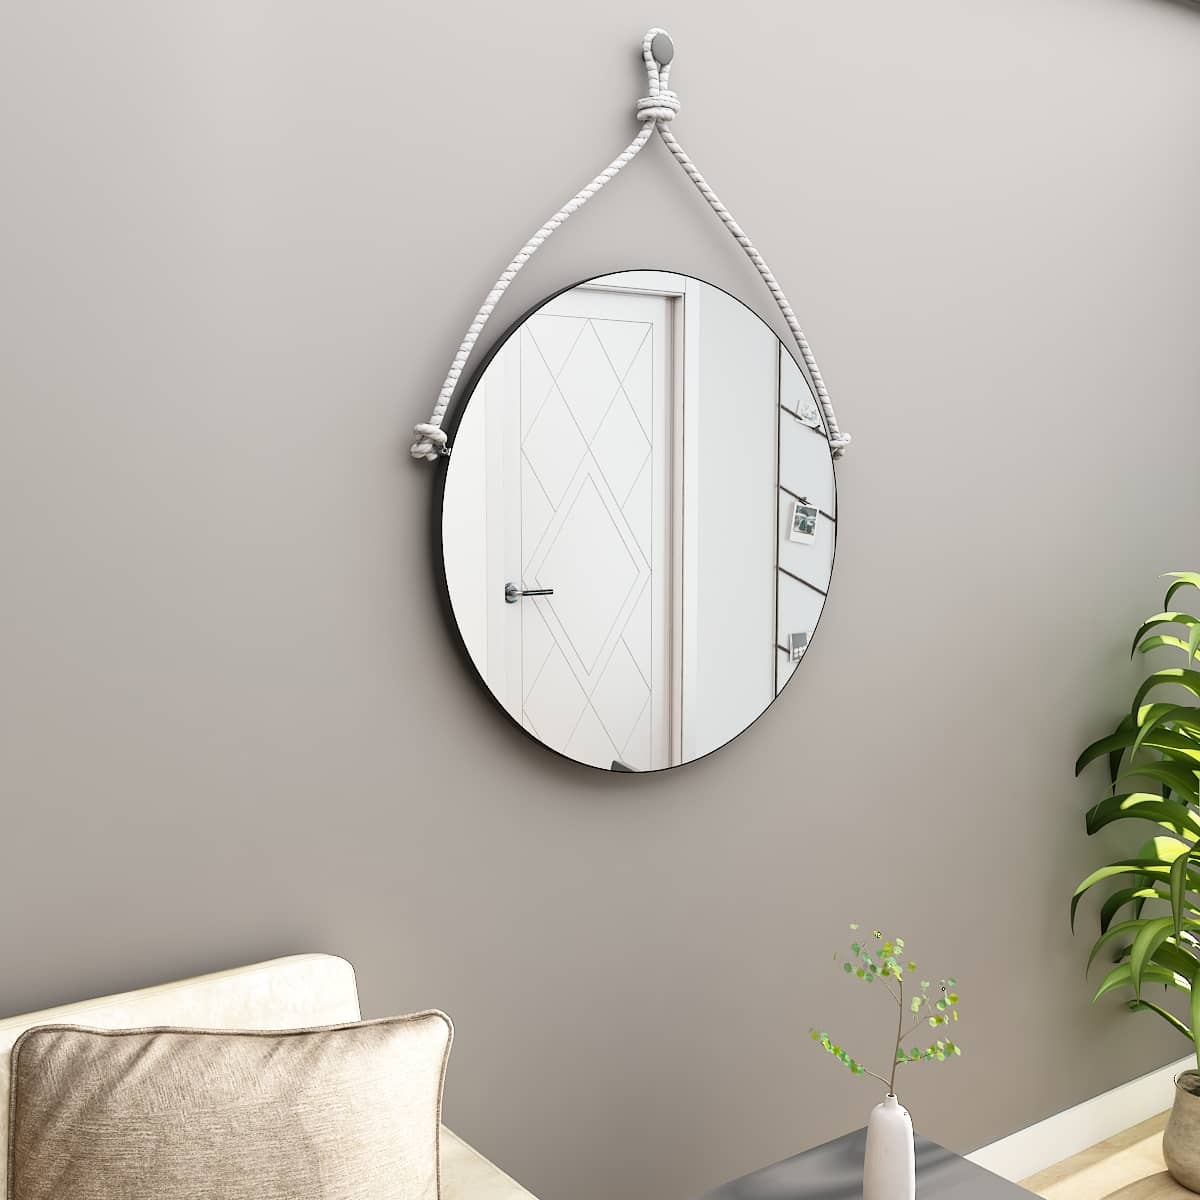 Hanging mirror with rope